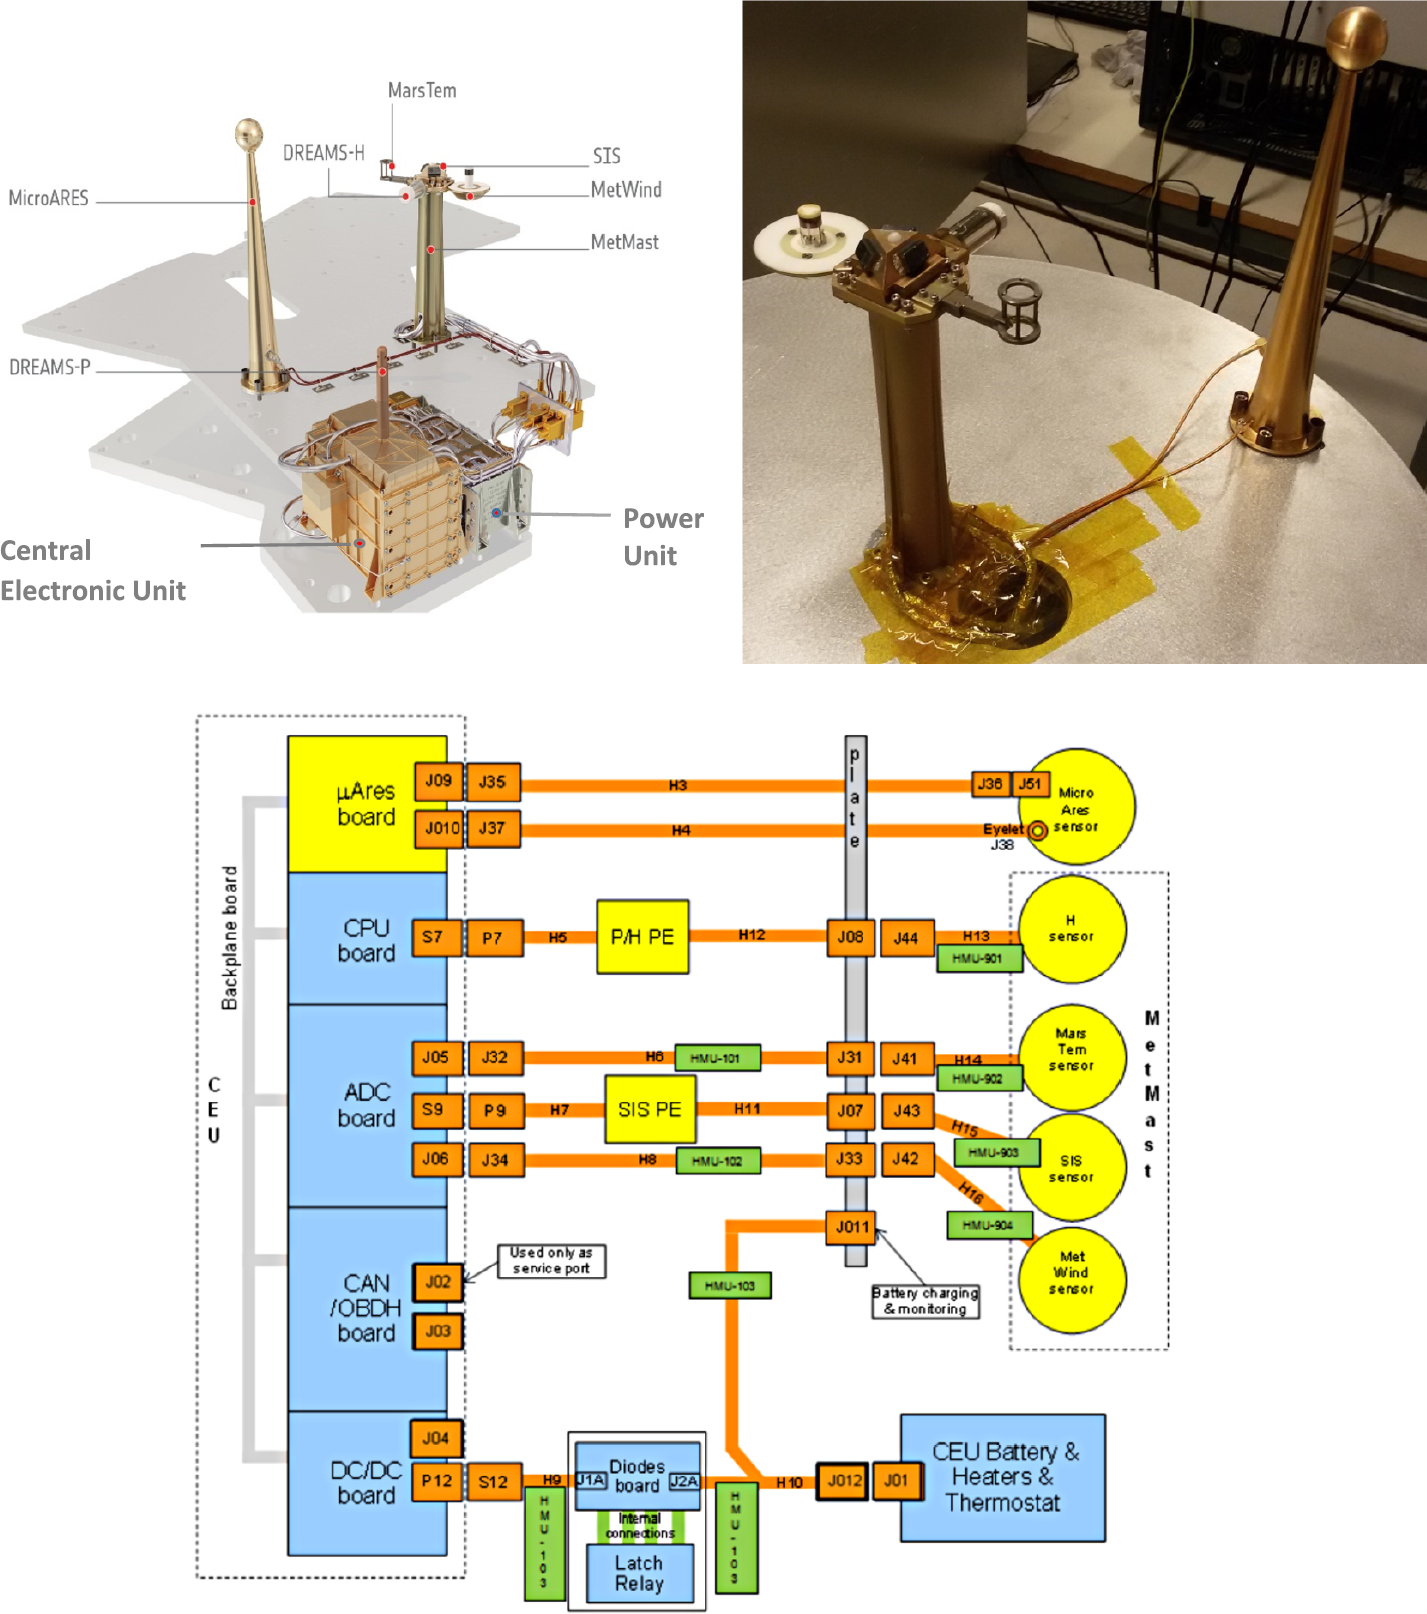 The Dreams Experiment Onboard Schiaparelli Module Of Exomars Land Rover Smith S Heater Wiring Diagram Open Image In New Window